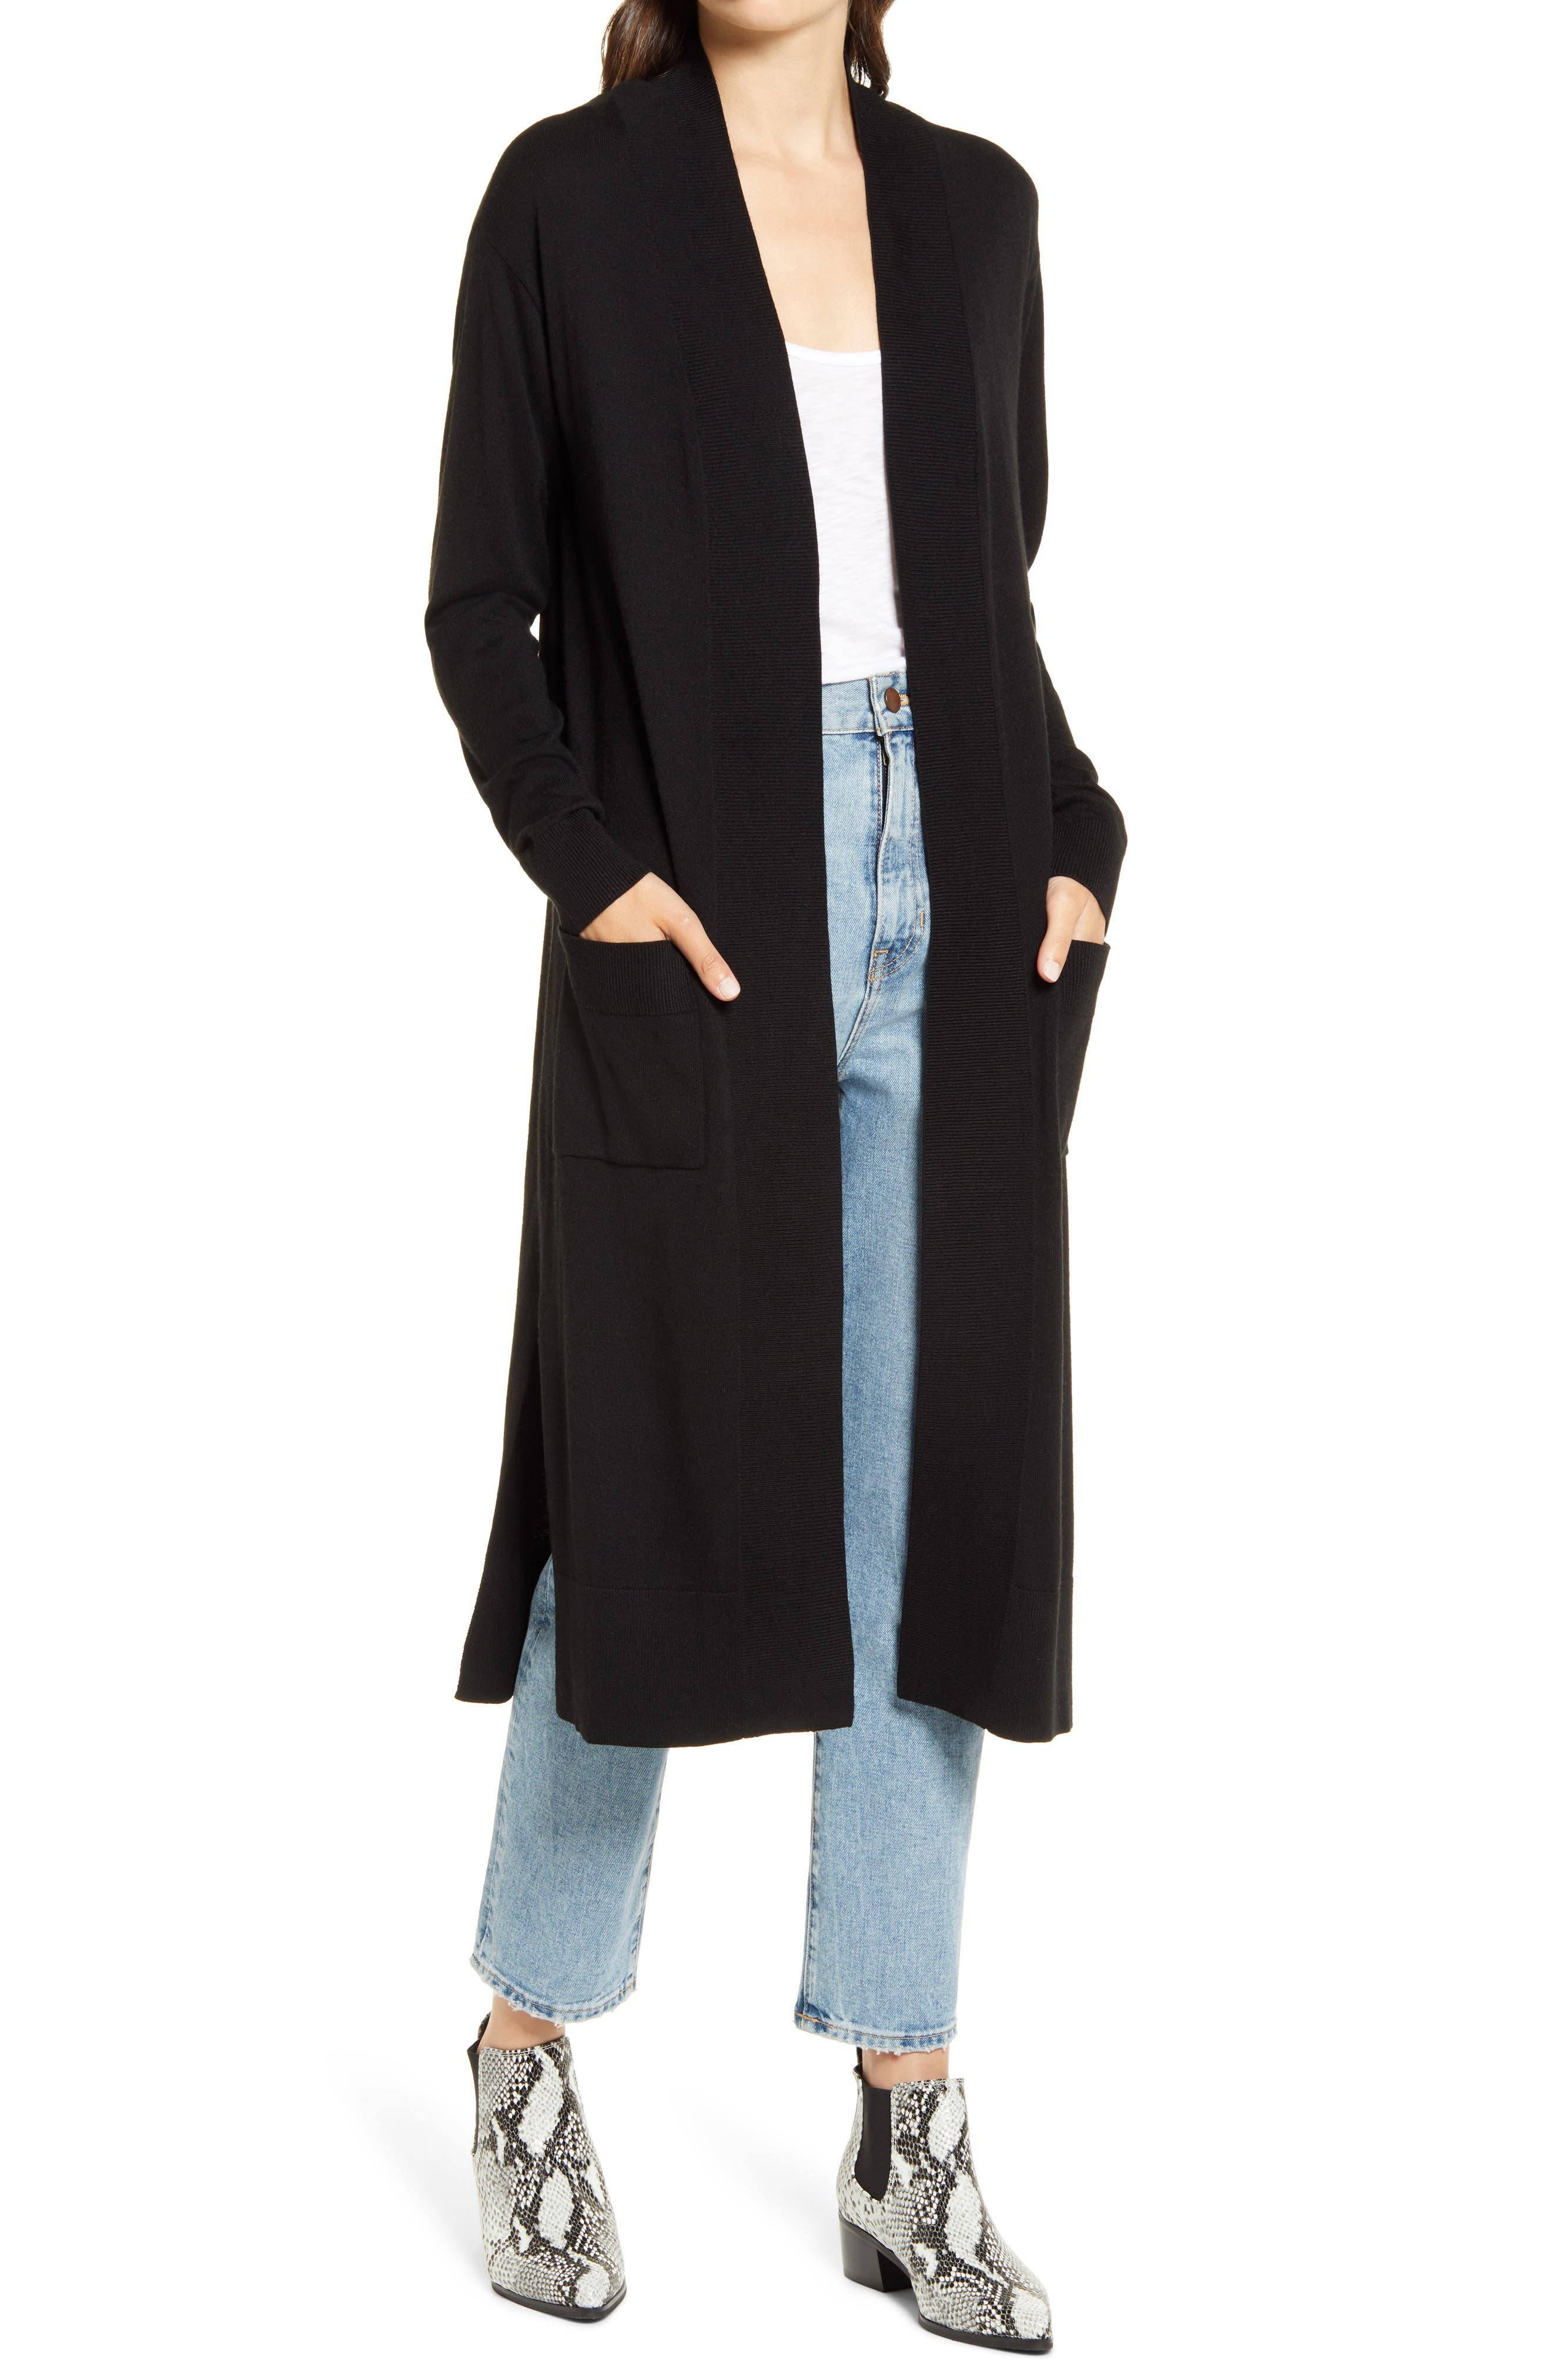 Ribbed knit edges a fine-gauge cashmere-kissed cardigan with a long open-front design that easily goes with anything in your closet. Style Name: Chelsea28 Open Duster Cardigan. Style Number: 6015394. Available in stores.